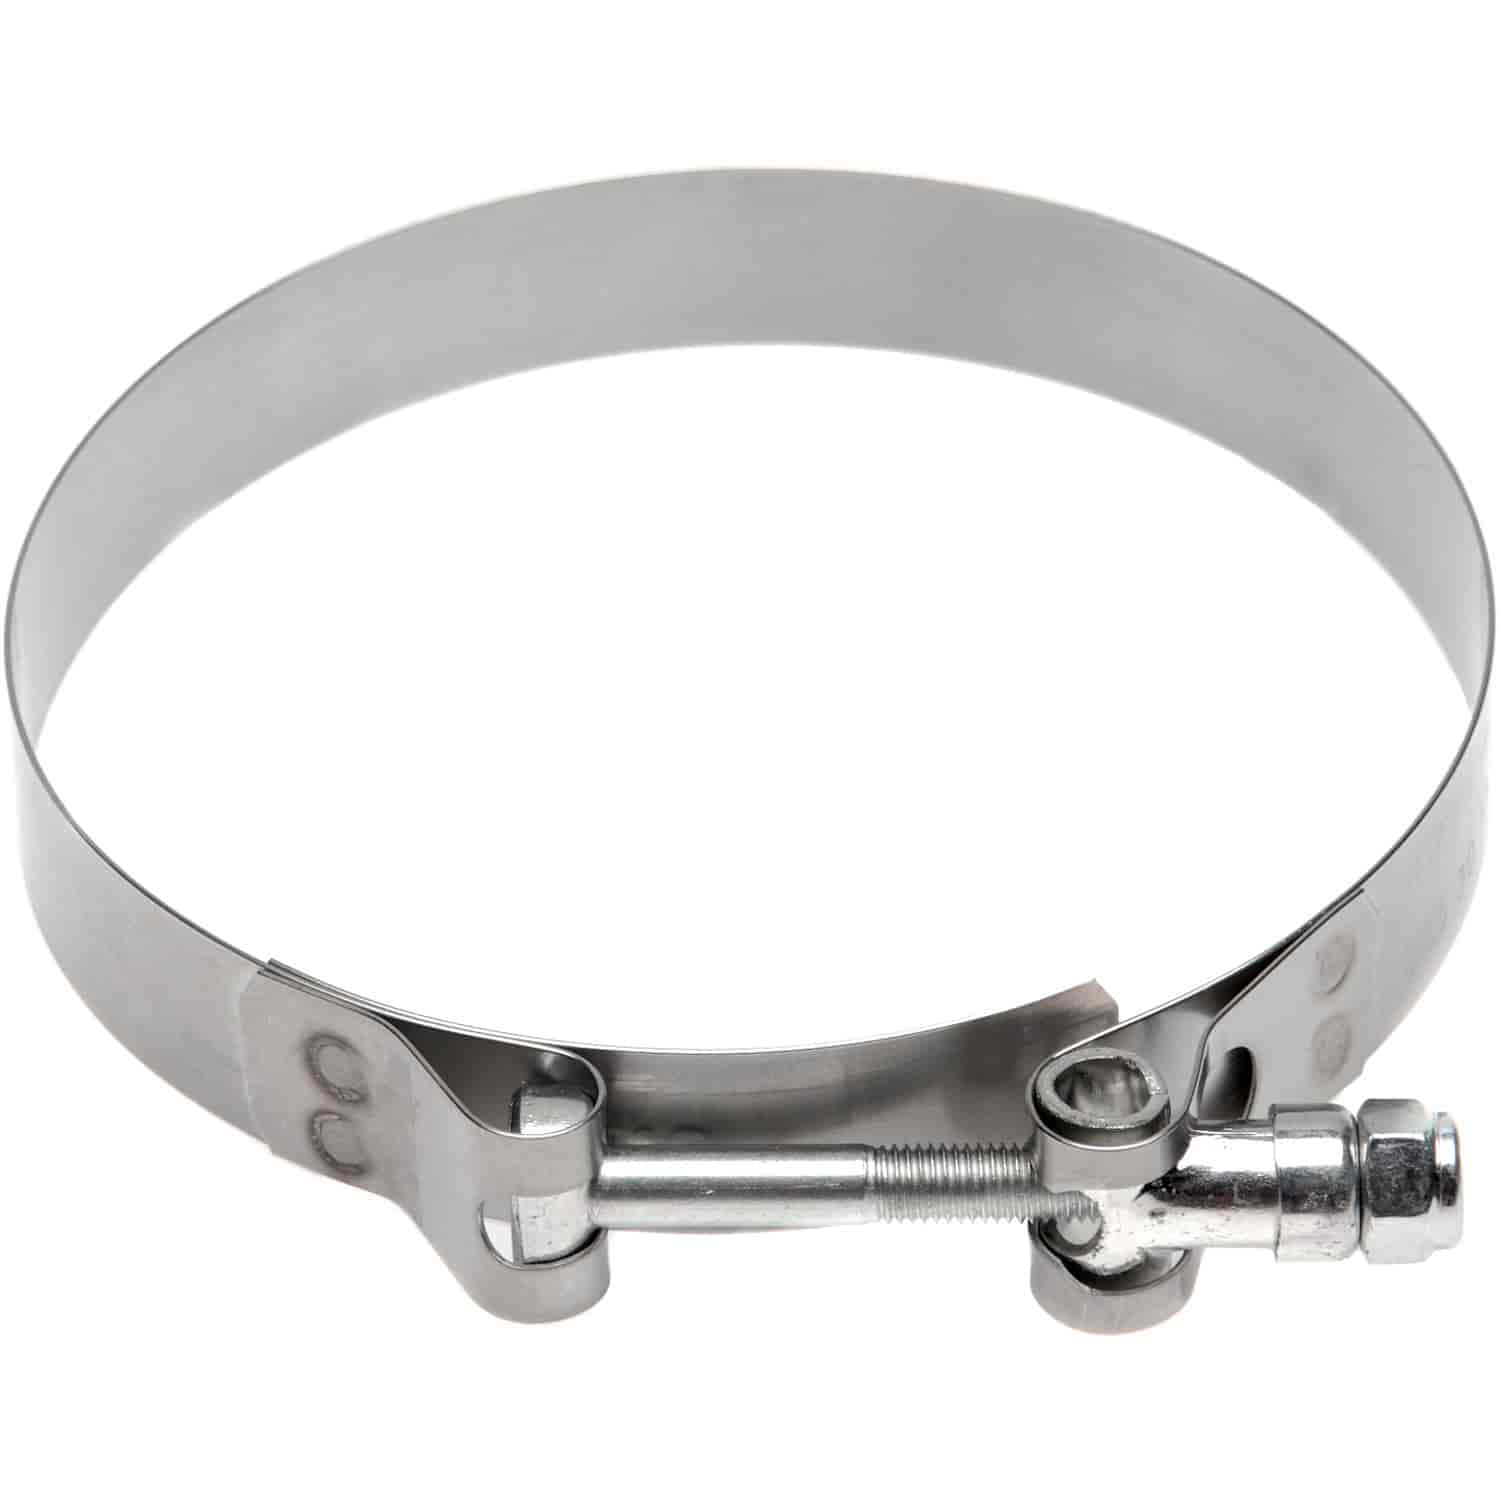 Gates Ideal 31 Series Heavy Duty T-Bolt Hose Clamp 32-35mm Pack of 10 3132